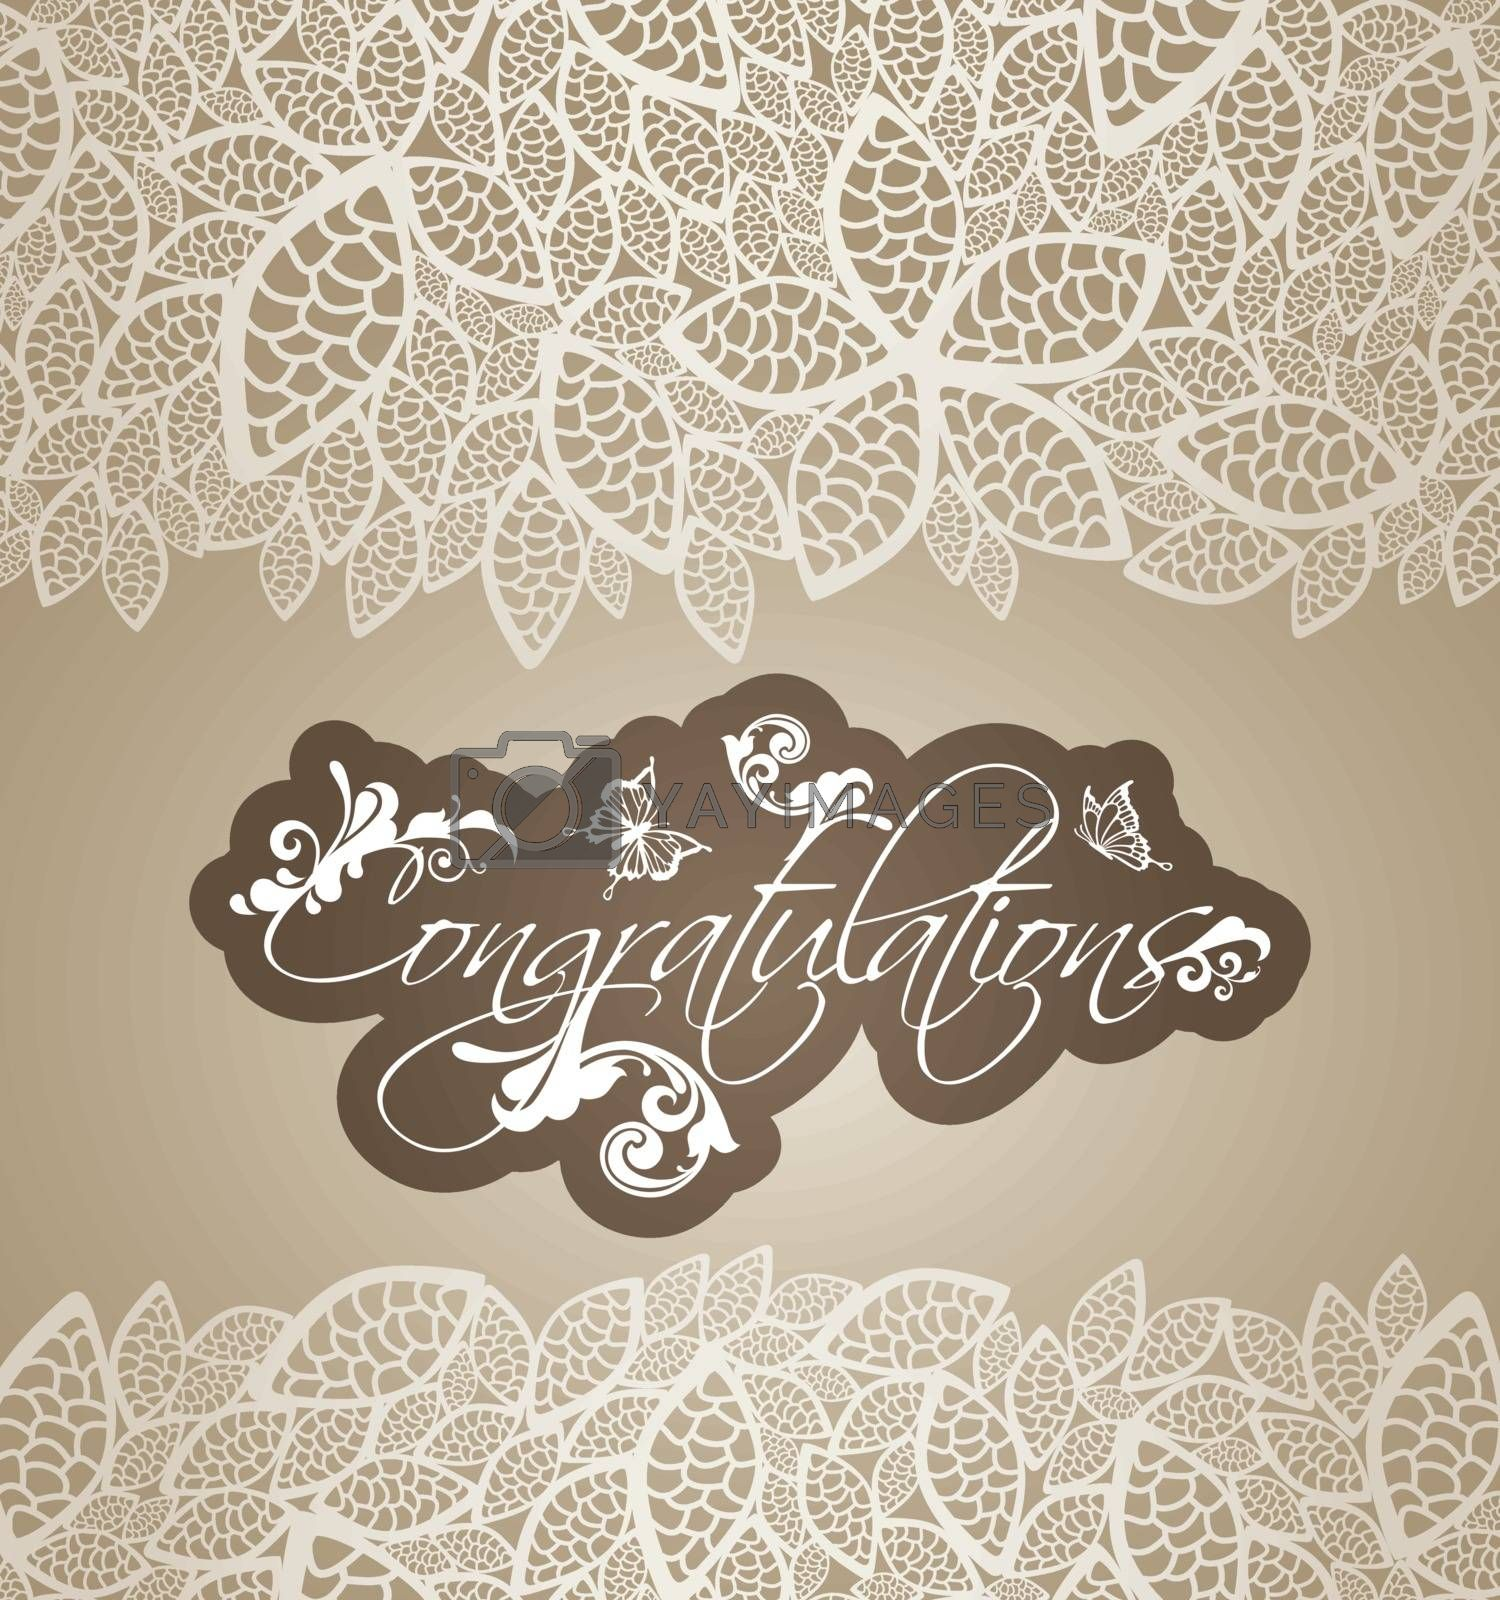 Congratulations greeting card with floral swirls and lace leaves borders. This image is a vector illustration.